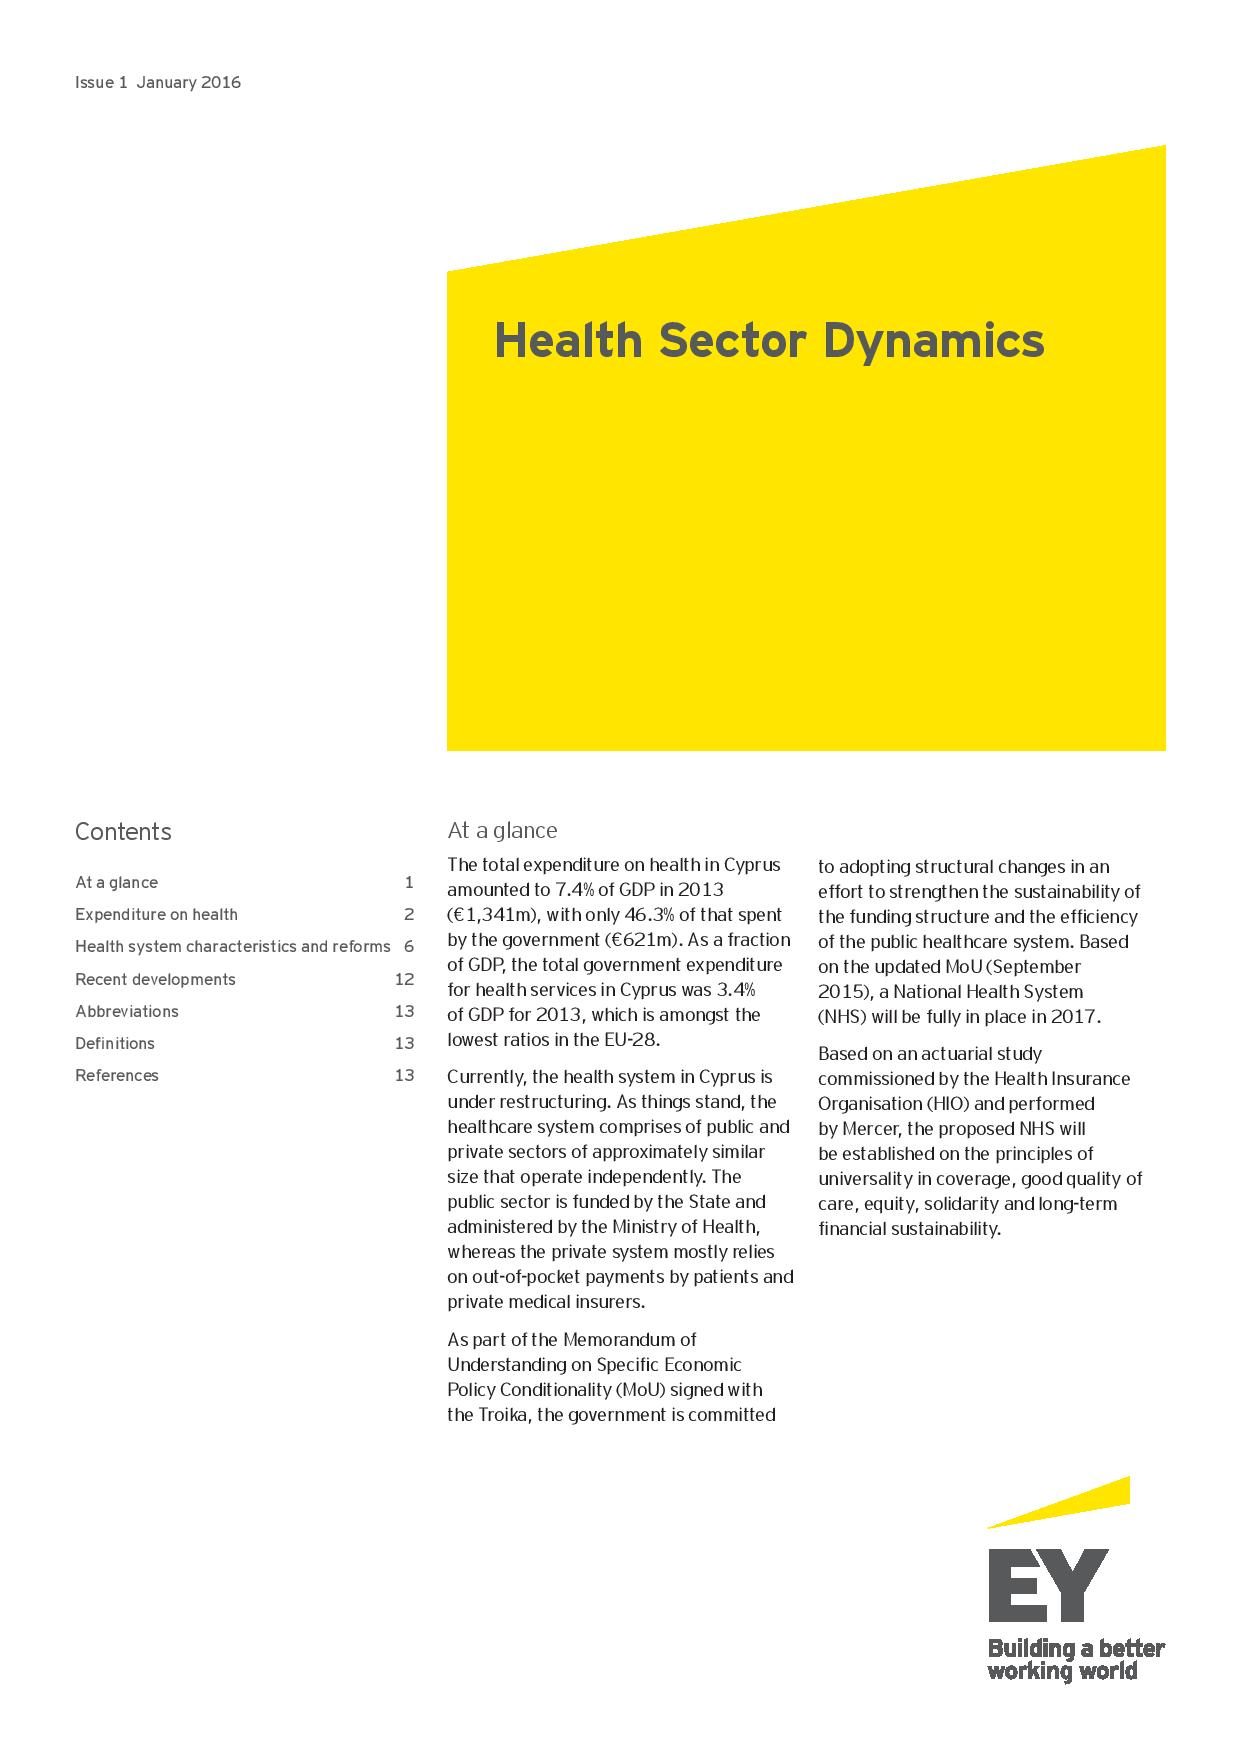 EY: Health Sector Dynamics Issue #1 January 2016